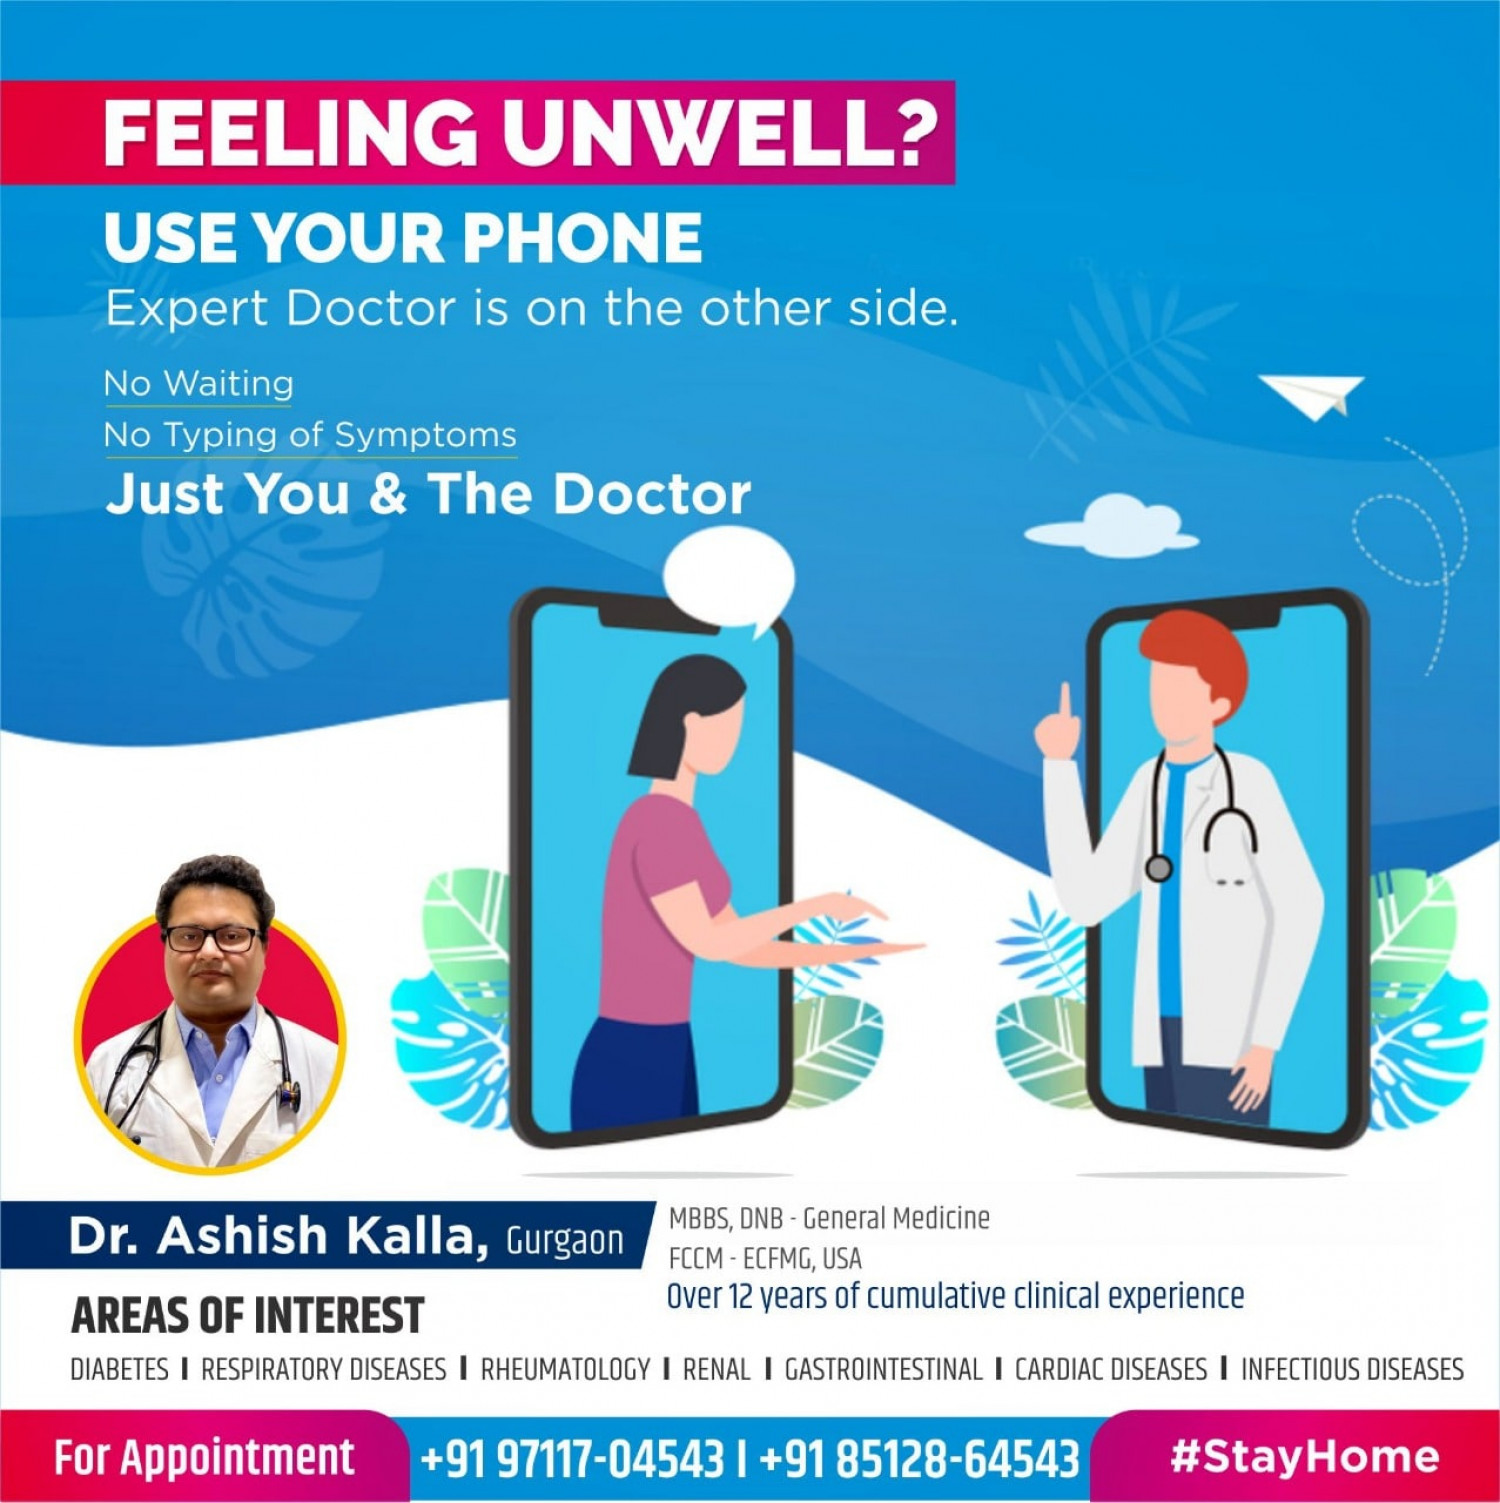 Best Diabetes Doctor in Gurgaon - Dr Ashish Kalla Infographic